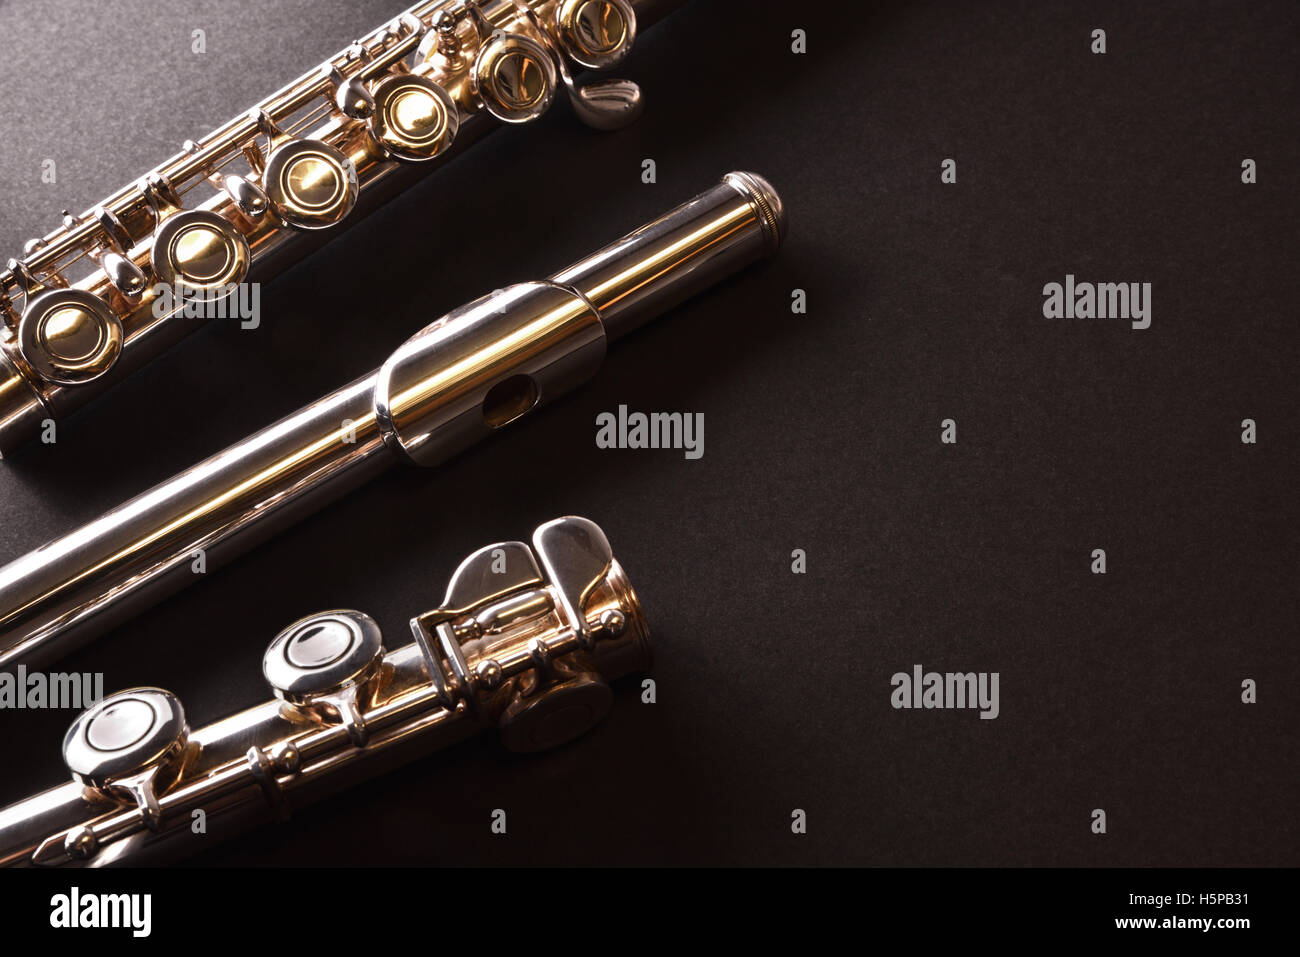 Detail of transverse flute disassembled into three parts on black table. Horizontal composition. Top view - Stock Image